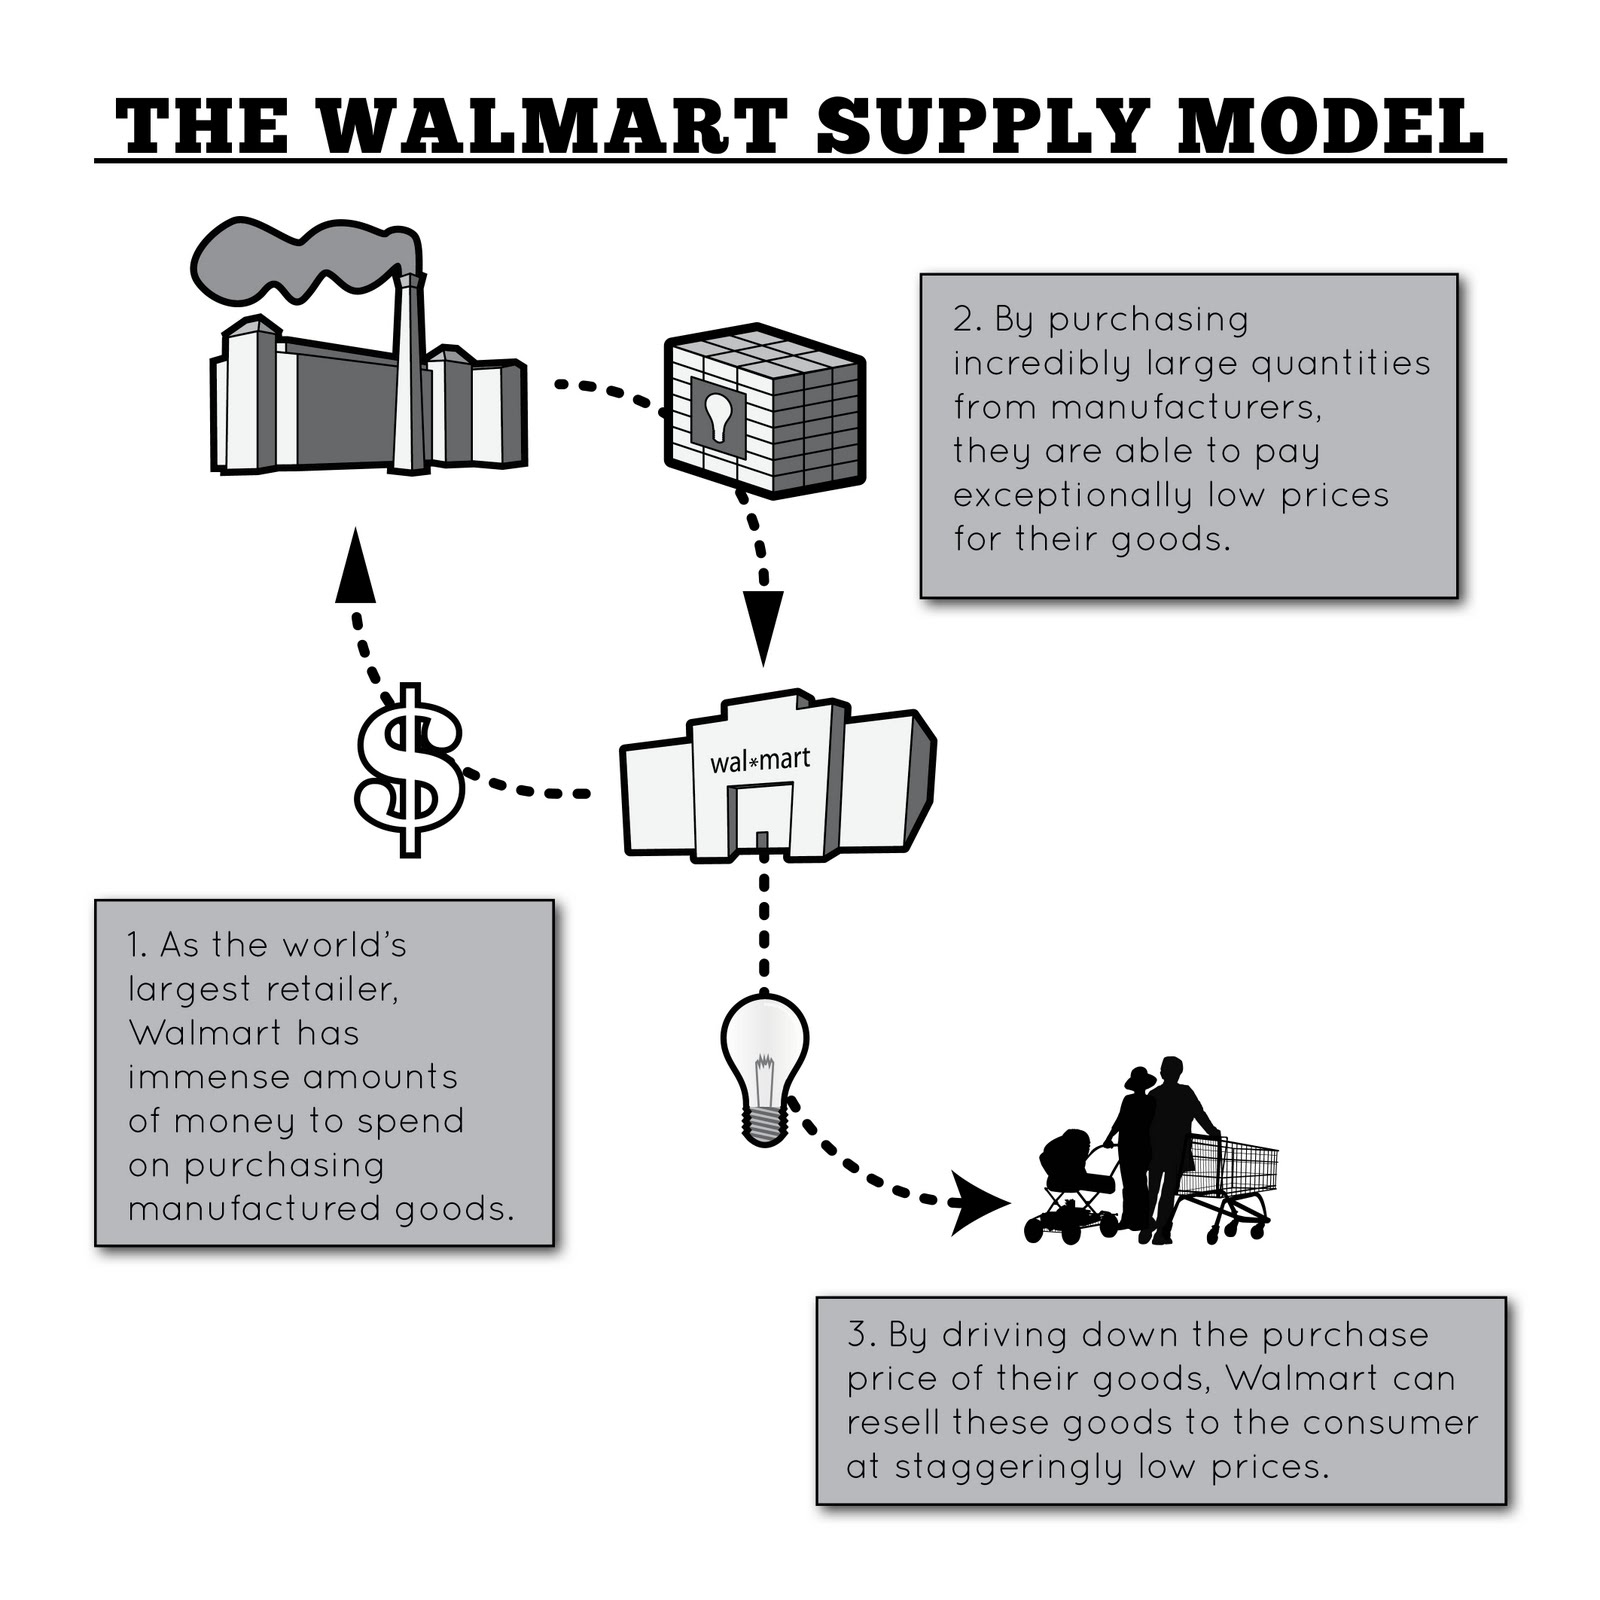 wal mart business history and practices essay This week's earnings report follows the worst stock decline wal-mart has  not  only good for wal-mart's employees, it's actually good for business,  and as the  nation's largest employer, wal-mart's own predatory employment practices  i  are thriving beyond the dreams of any plutocrat in history, the rest of.